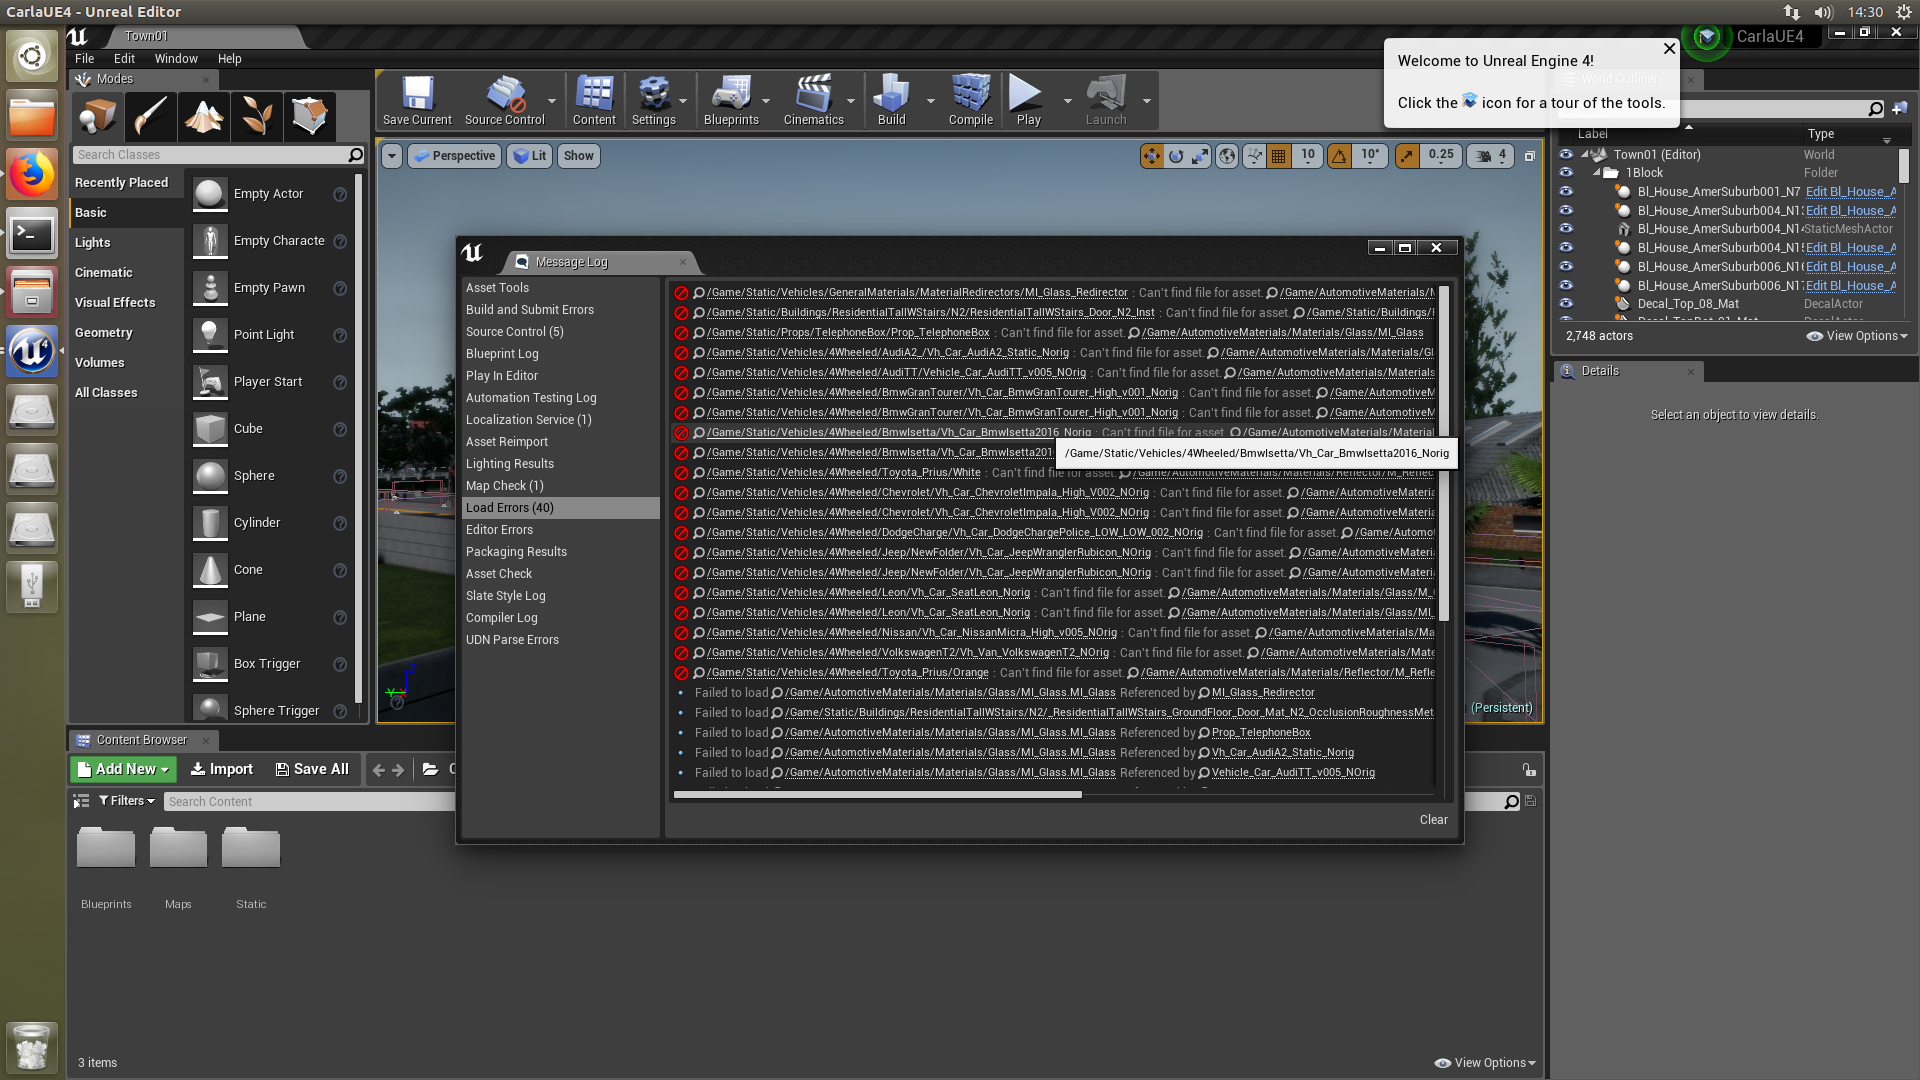 Carla in UE4 opening with a lot of Load Errors  (Can't find file for